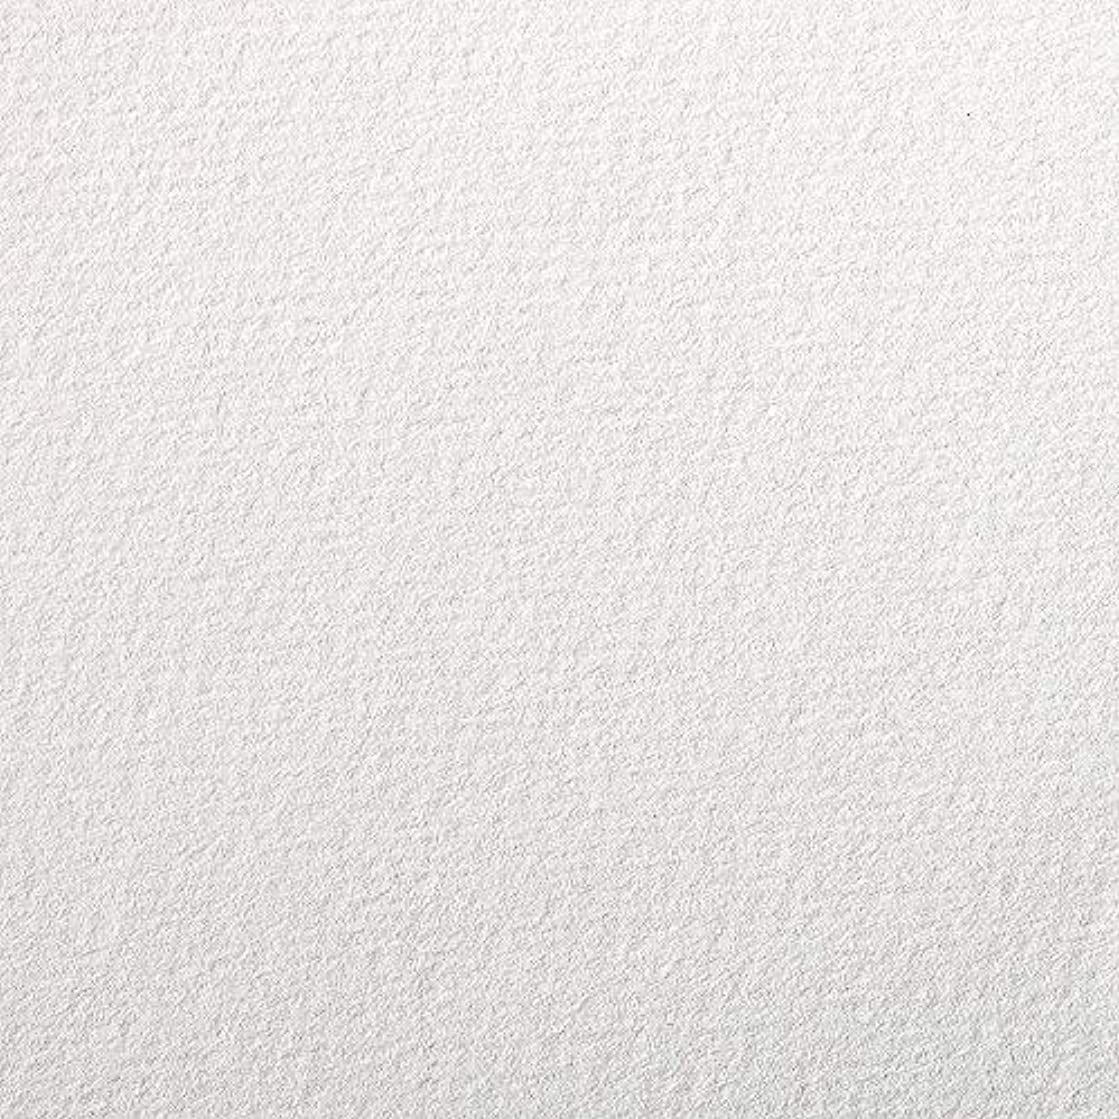 Clairefontaine Etival Coloured Grained Drawing Paper, 160 g, 50 x 65 cm - White, Pack of 24 Sheets